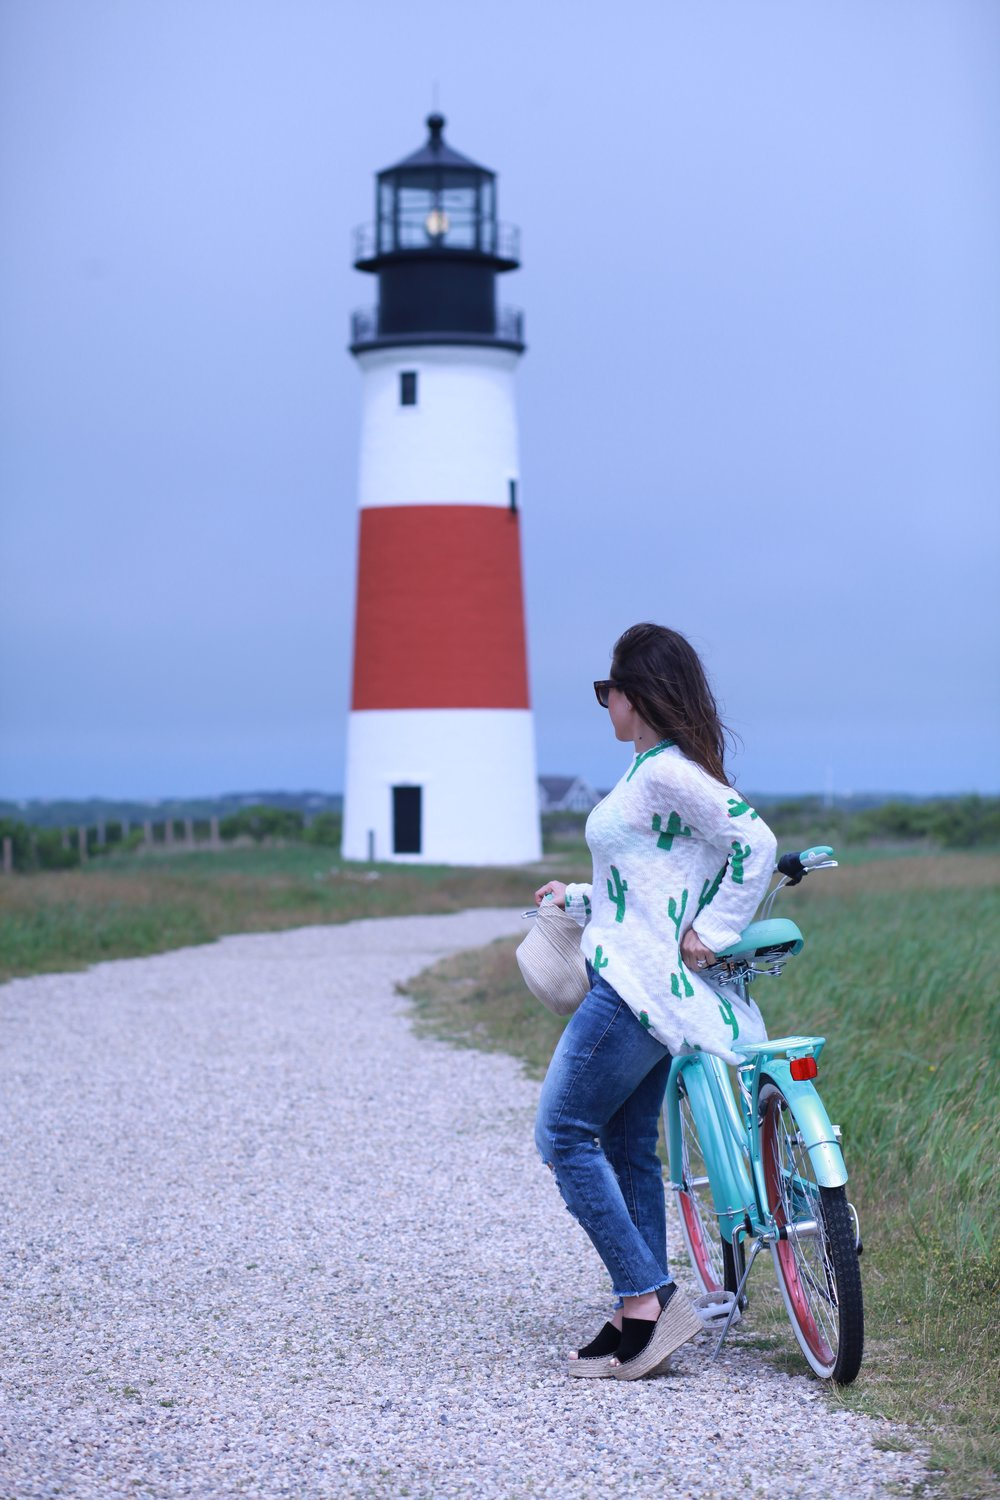 Fashion, lifestyle, and beauty blogger Little Tree Vintages shows what to wear while biking on an island during the Spring and Summer.